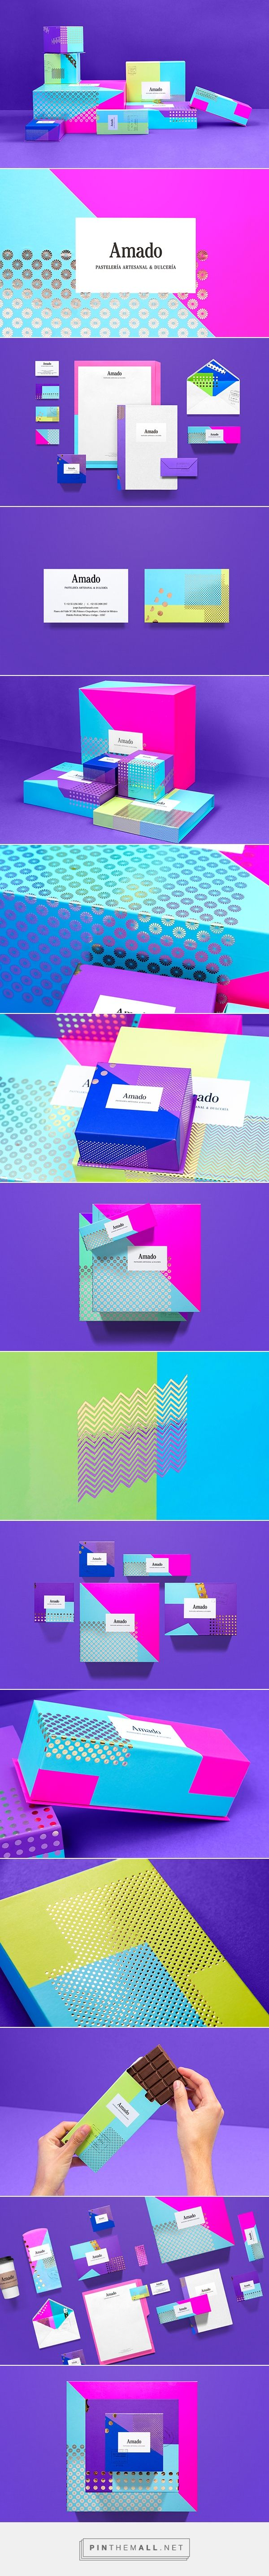 My Spanish is a little rusty, but I believe this in a corporate identity #stationary suite for an artisan bakery and chocolatier. I love the bright, fun colors. Amado by Hyatt on Behance